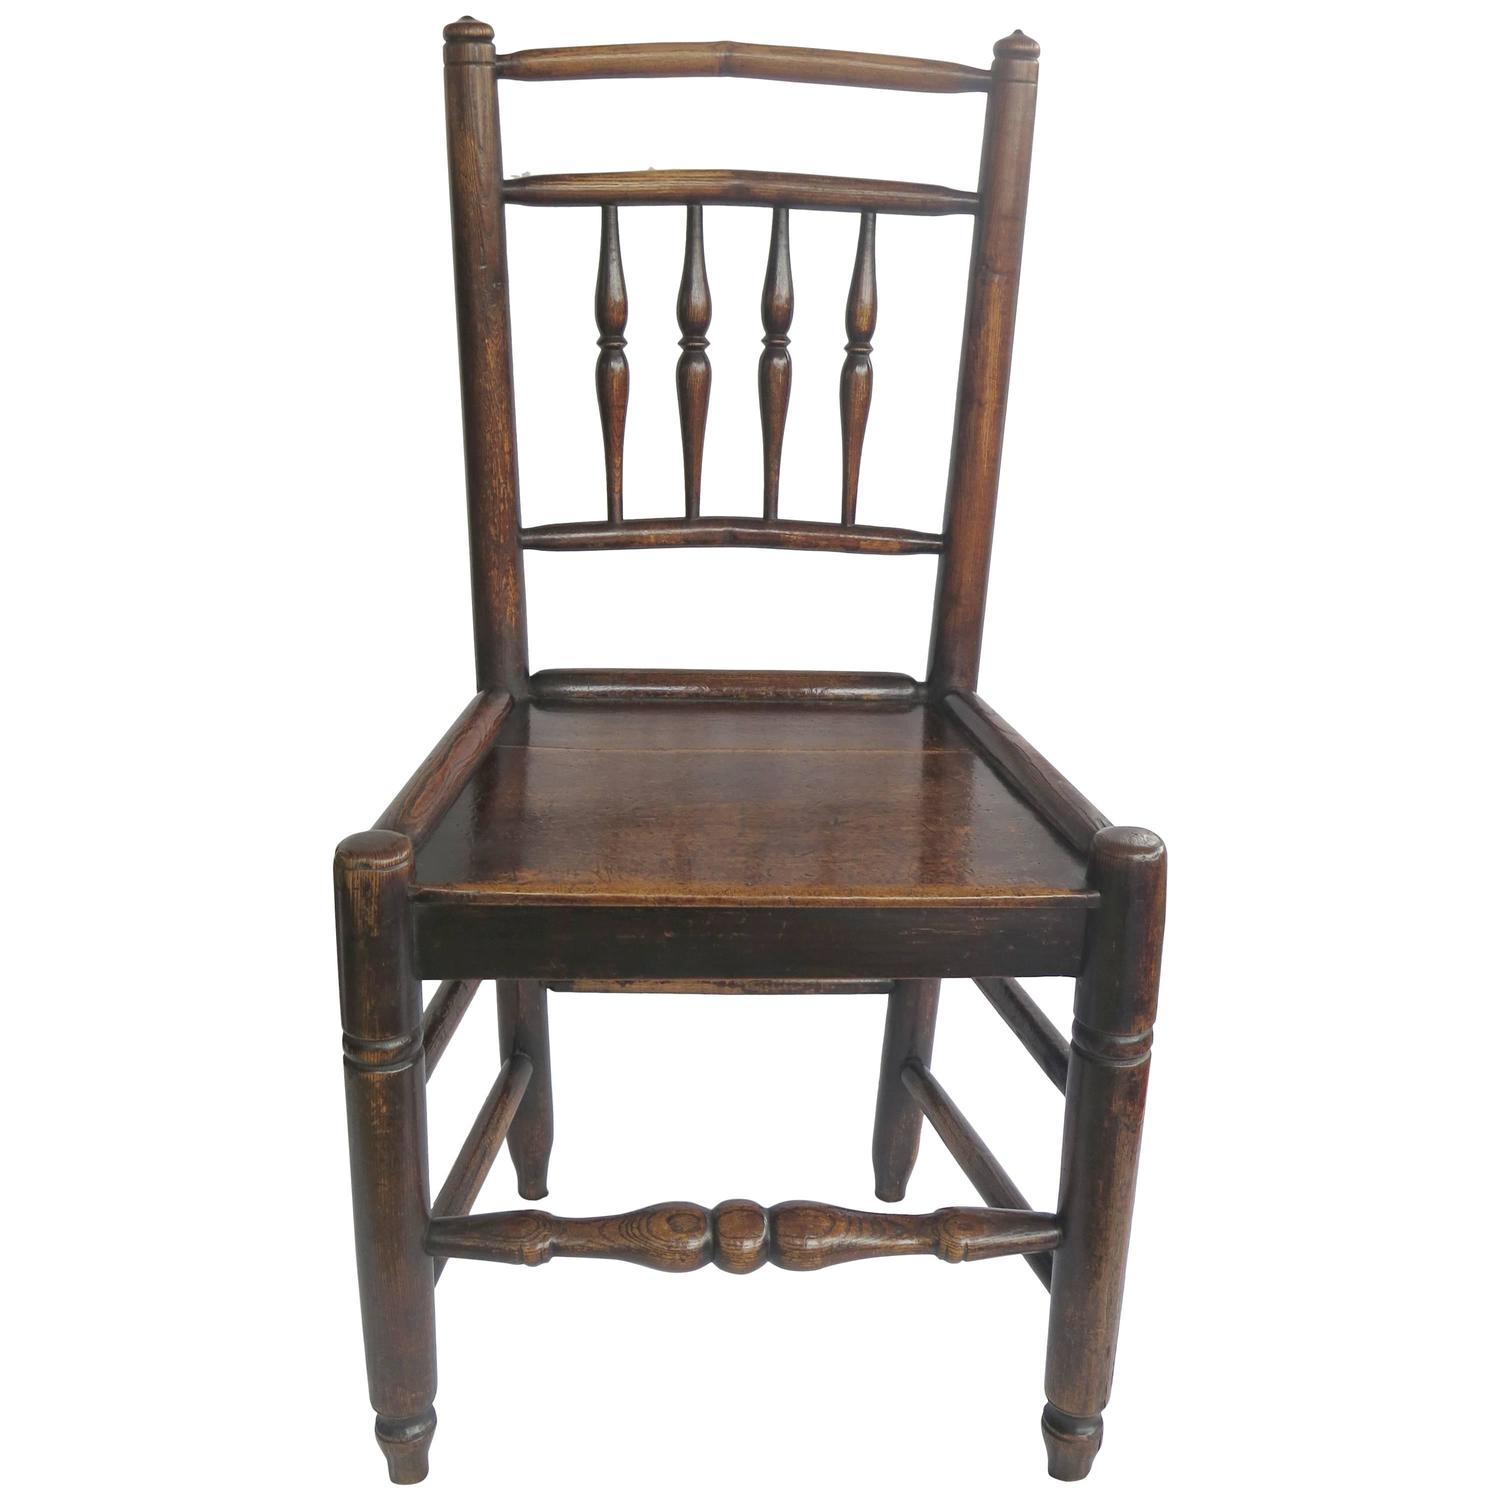 Late 18th C Country Side Chair Spindle Back Elm and Ash